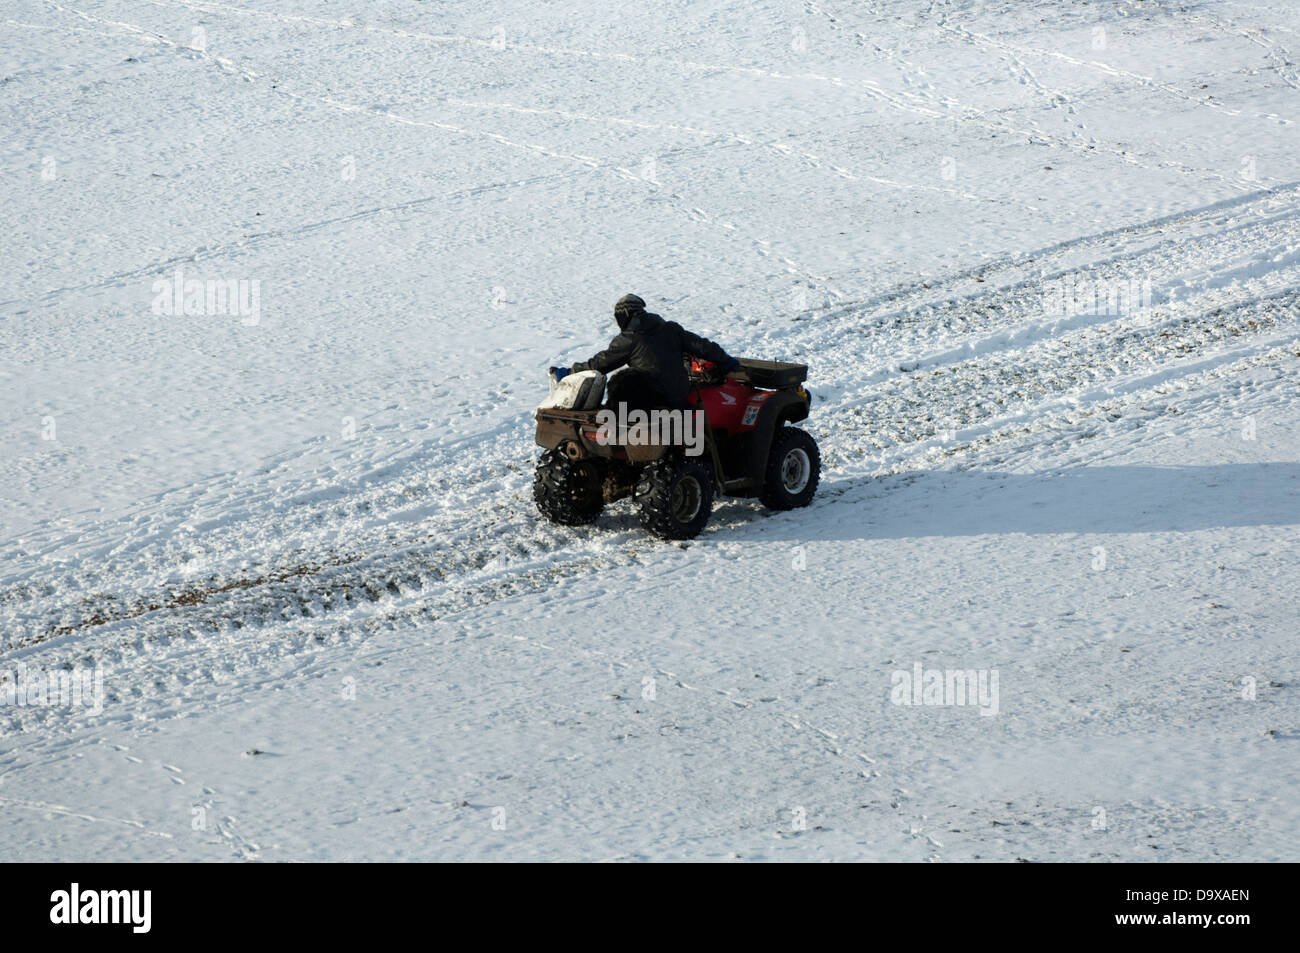 Farmer on quad ATV bike pouring feed out for sheep in snow, North Yorkshire. - Stock Image